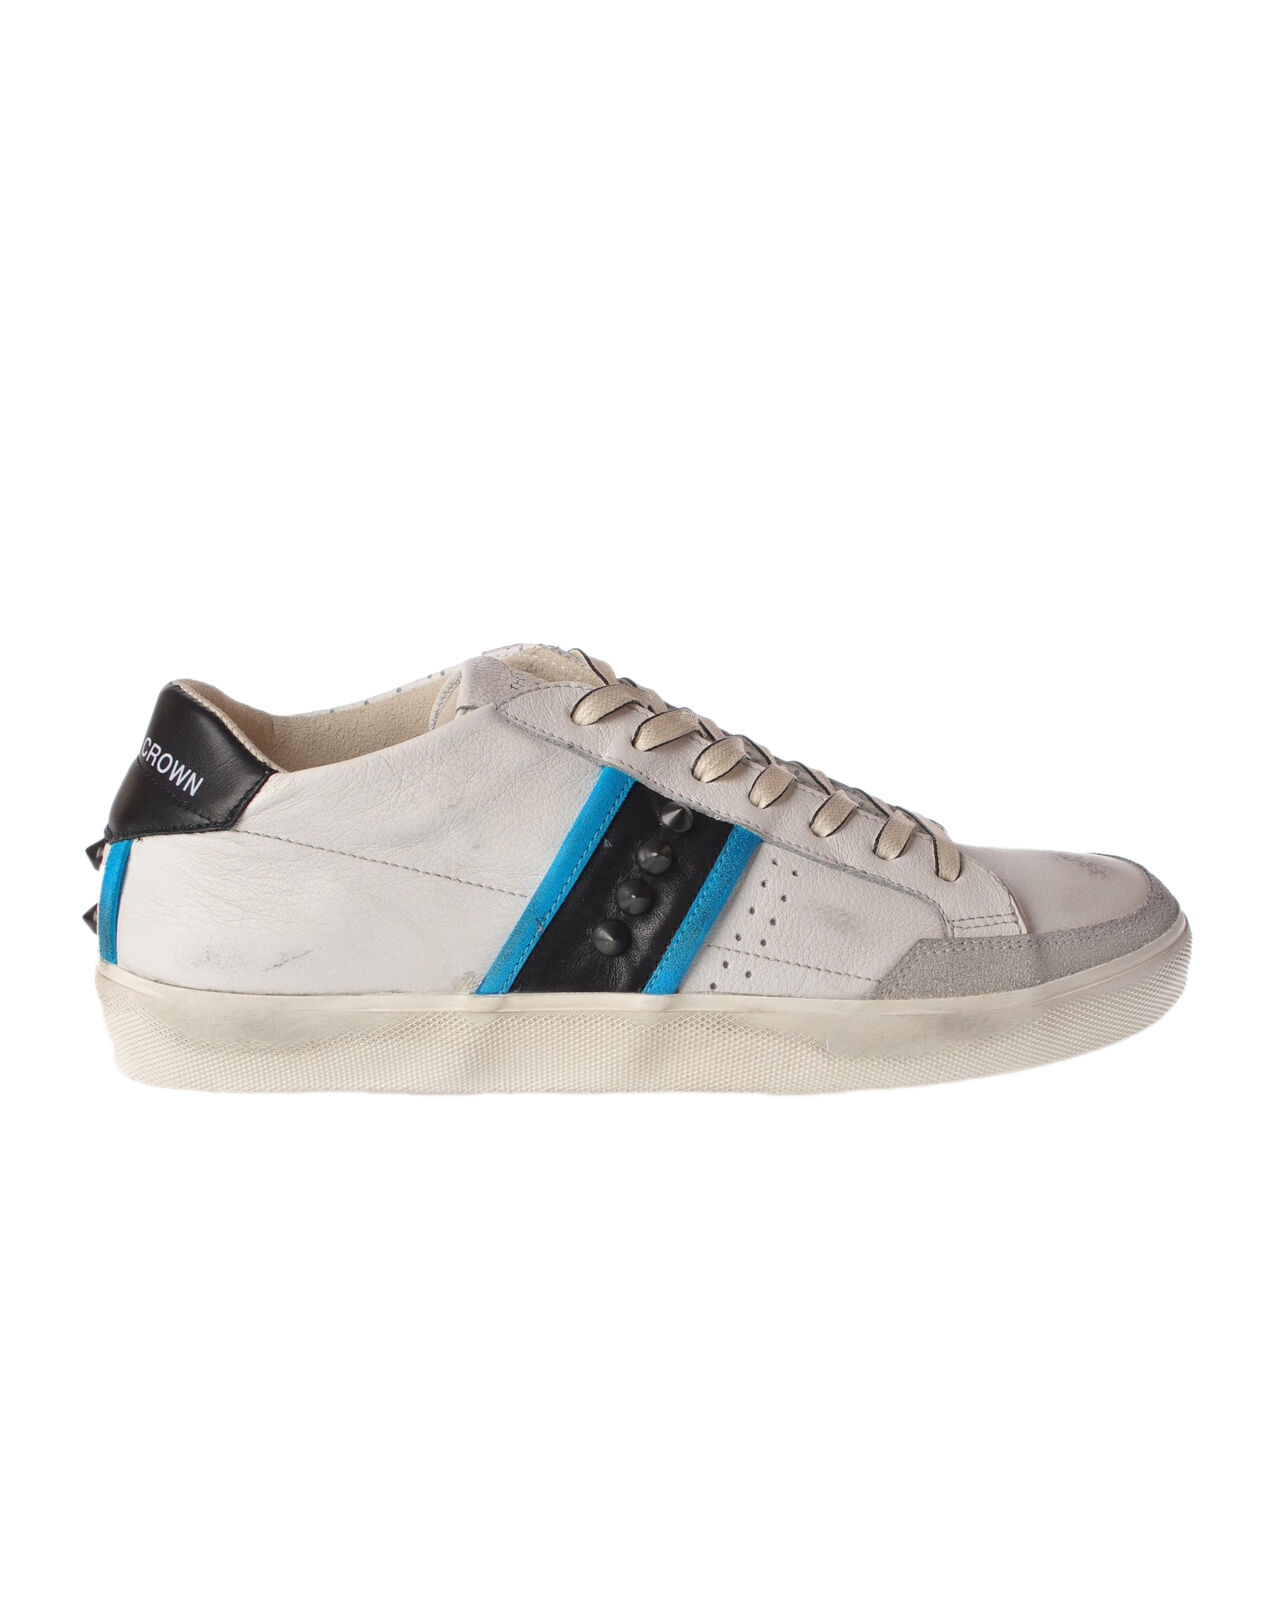 Leather Crown - shoes-Sneakers low - Man - White - 4751722B182753